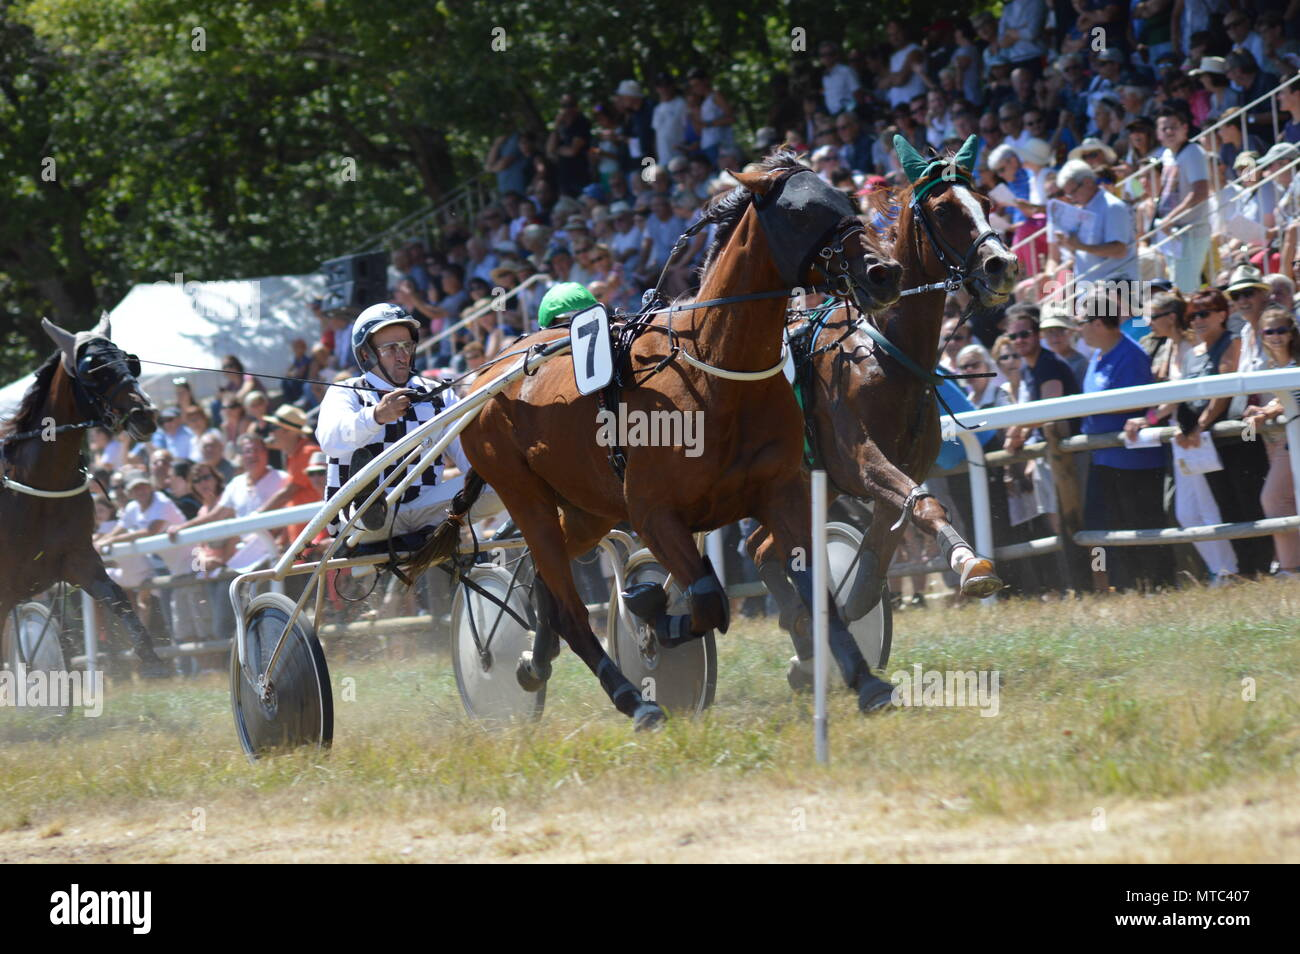 Hippodrome a Sault (South of France, The only horse race in the year, 13 August 2017) Stock Photo